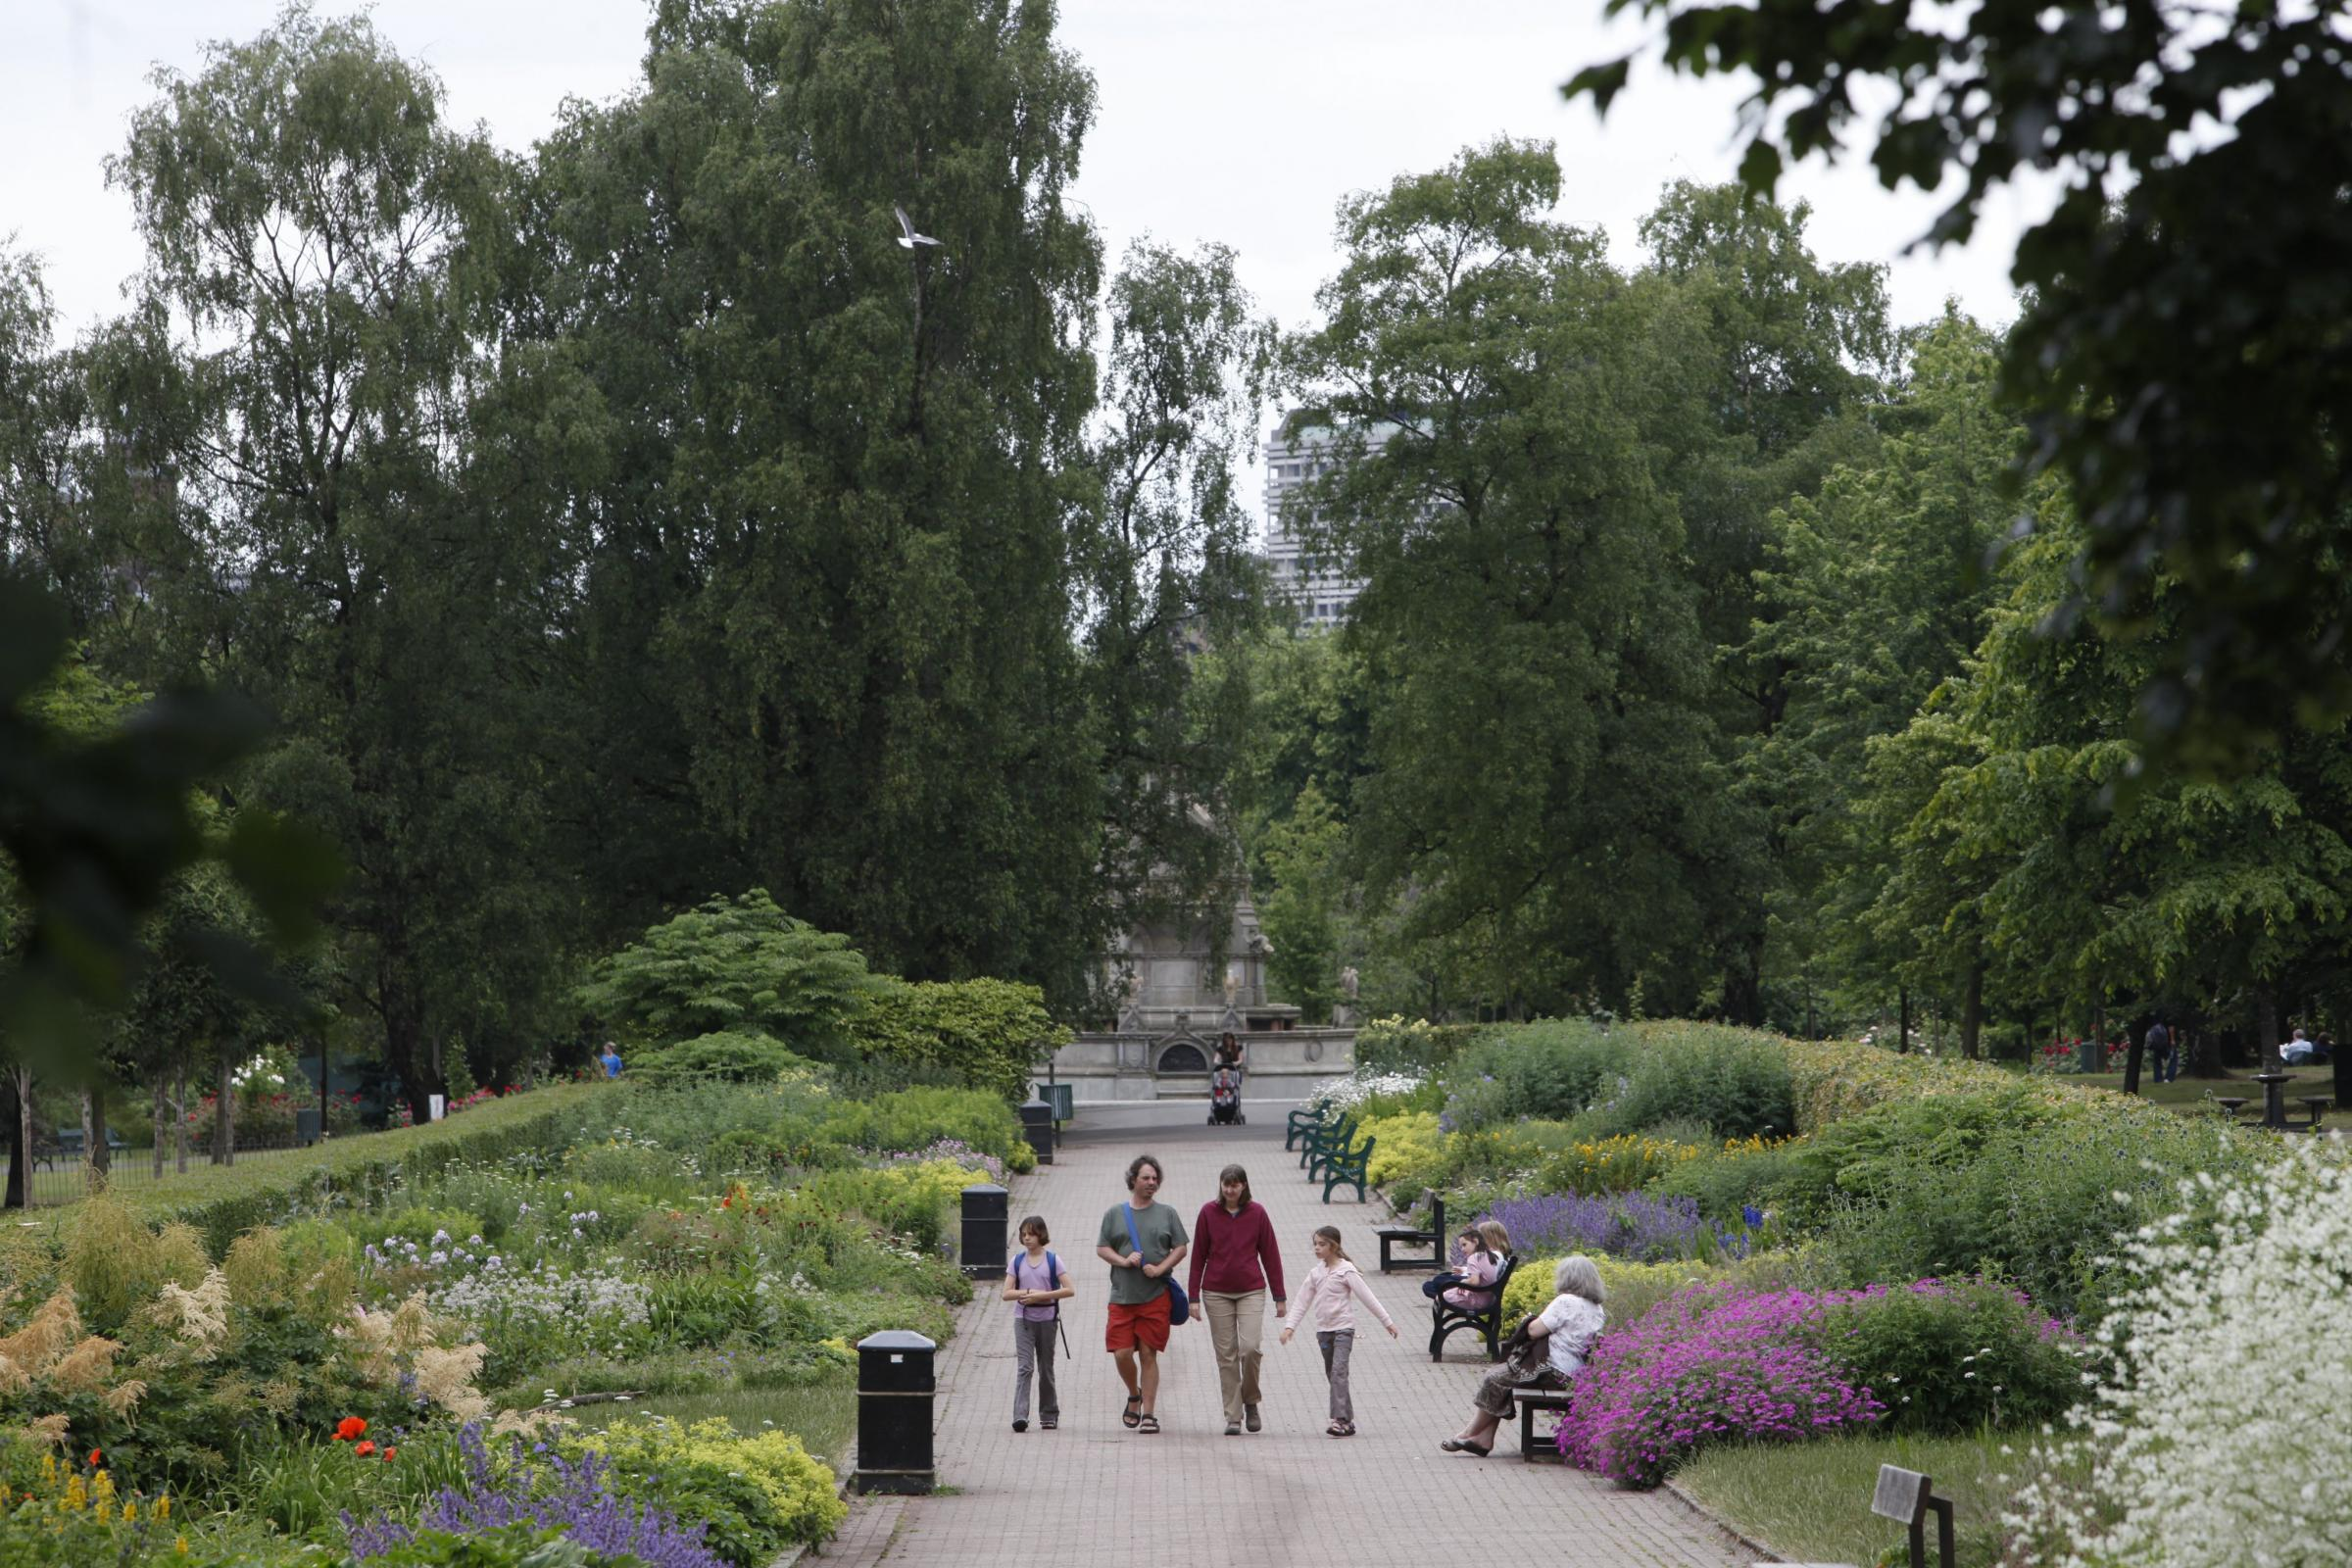 Strategy looks to guide Glasgow City Council's use of open spaces across city